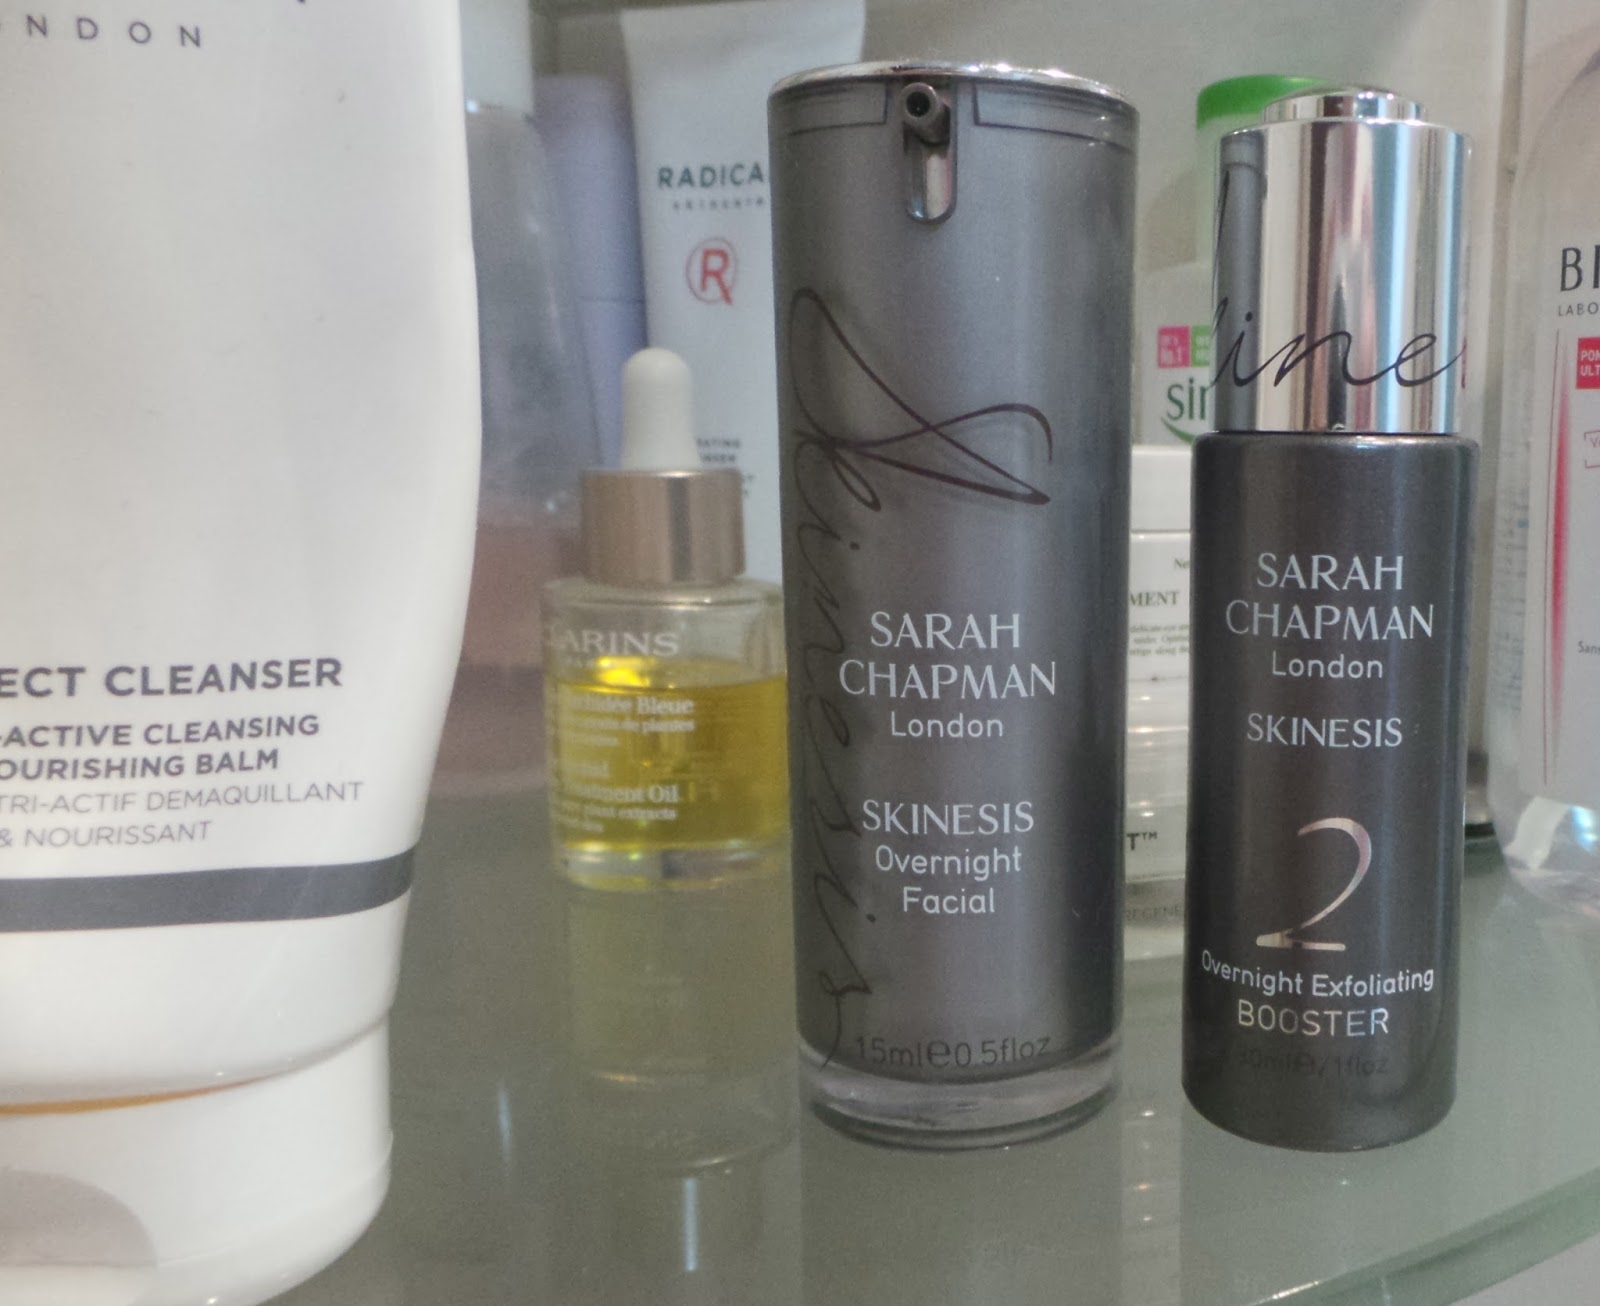 Sarah Chapman Overnight Exfoliating Booster and Overnight Facial